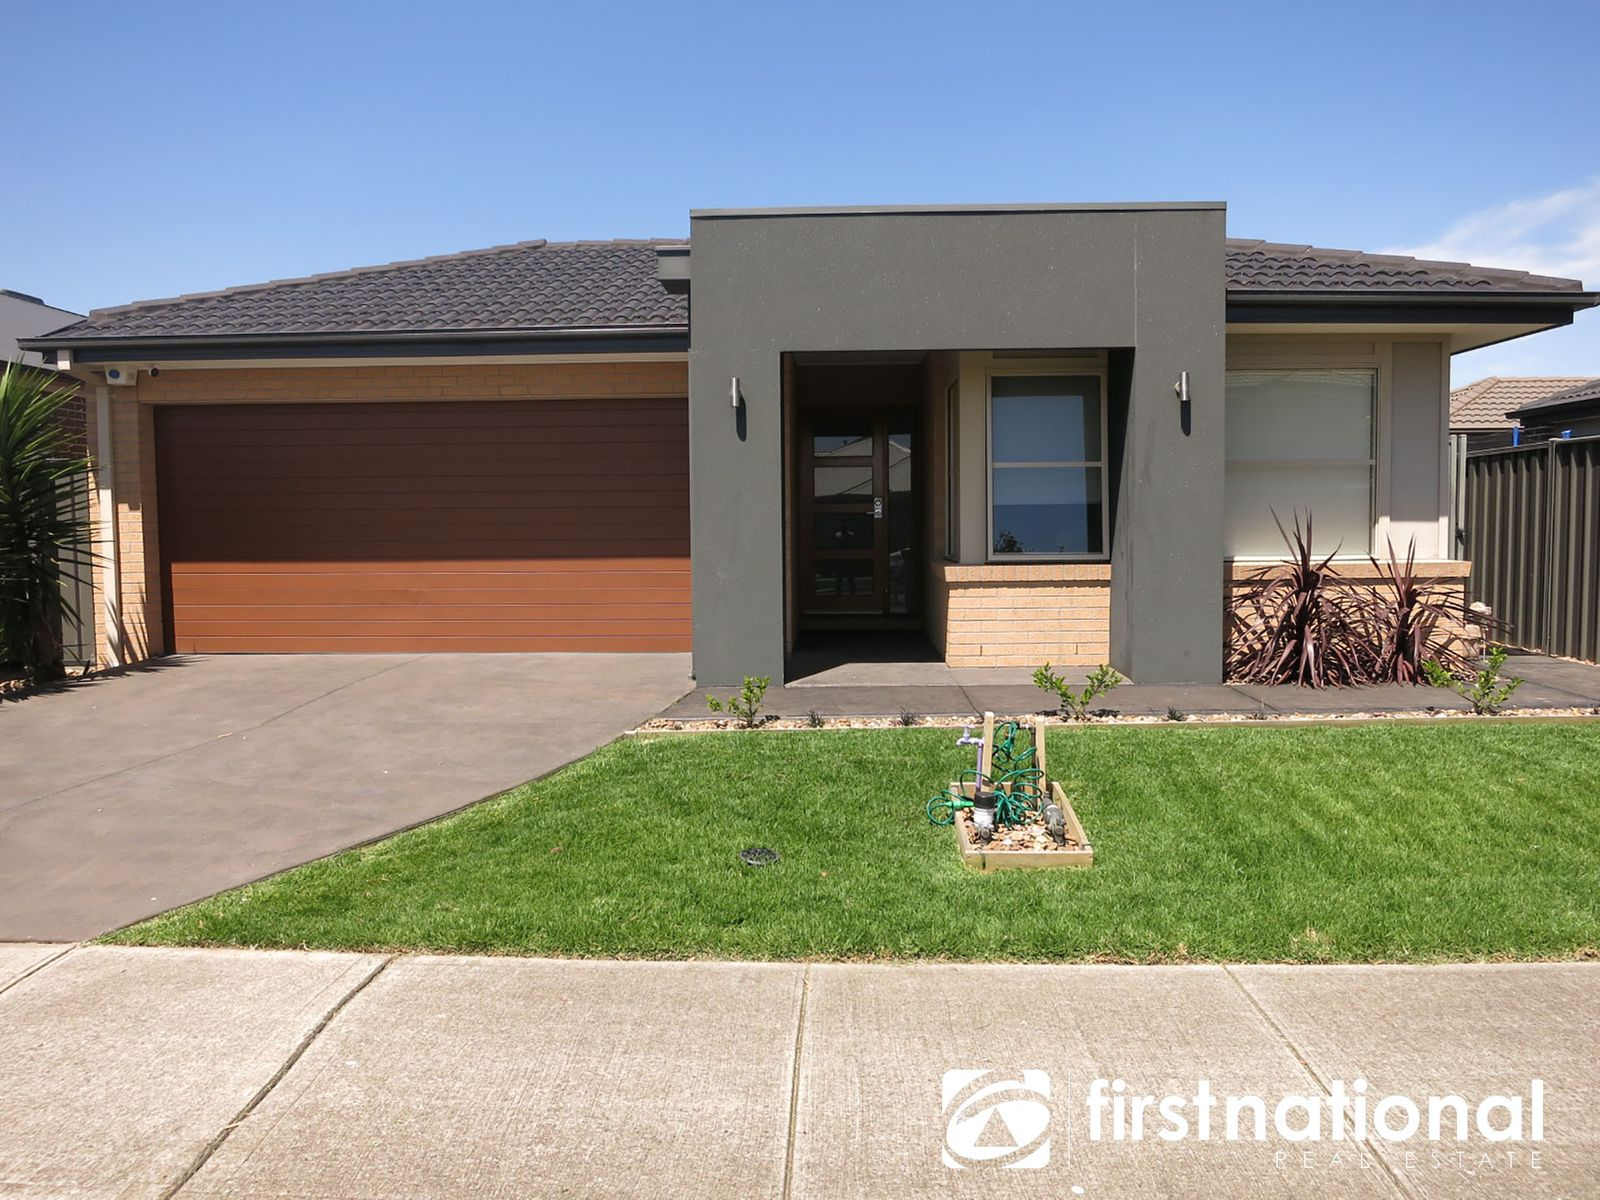 28 Chagall Parade, Clyde North, VIC 3978